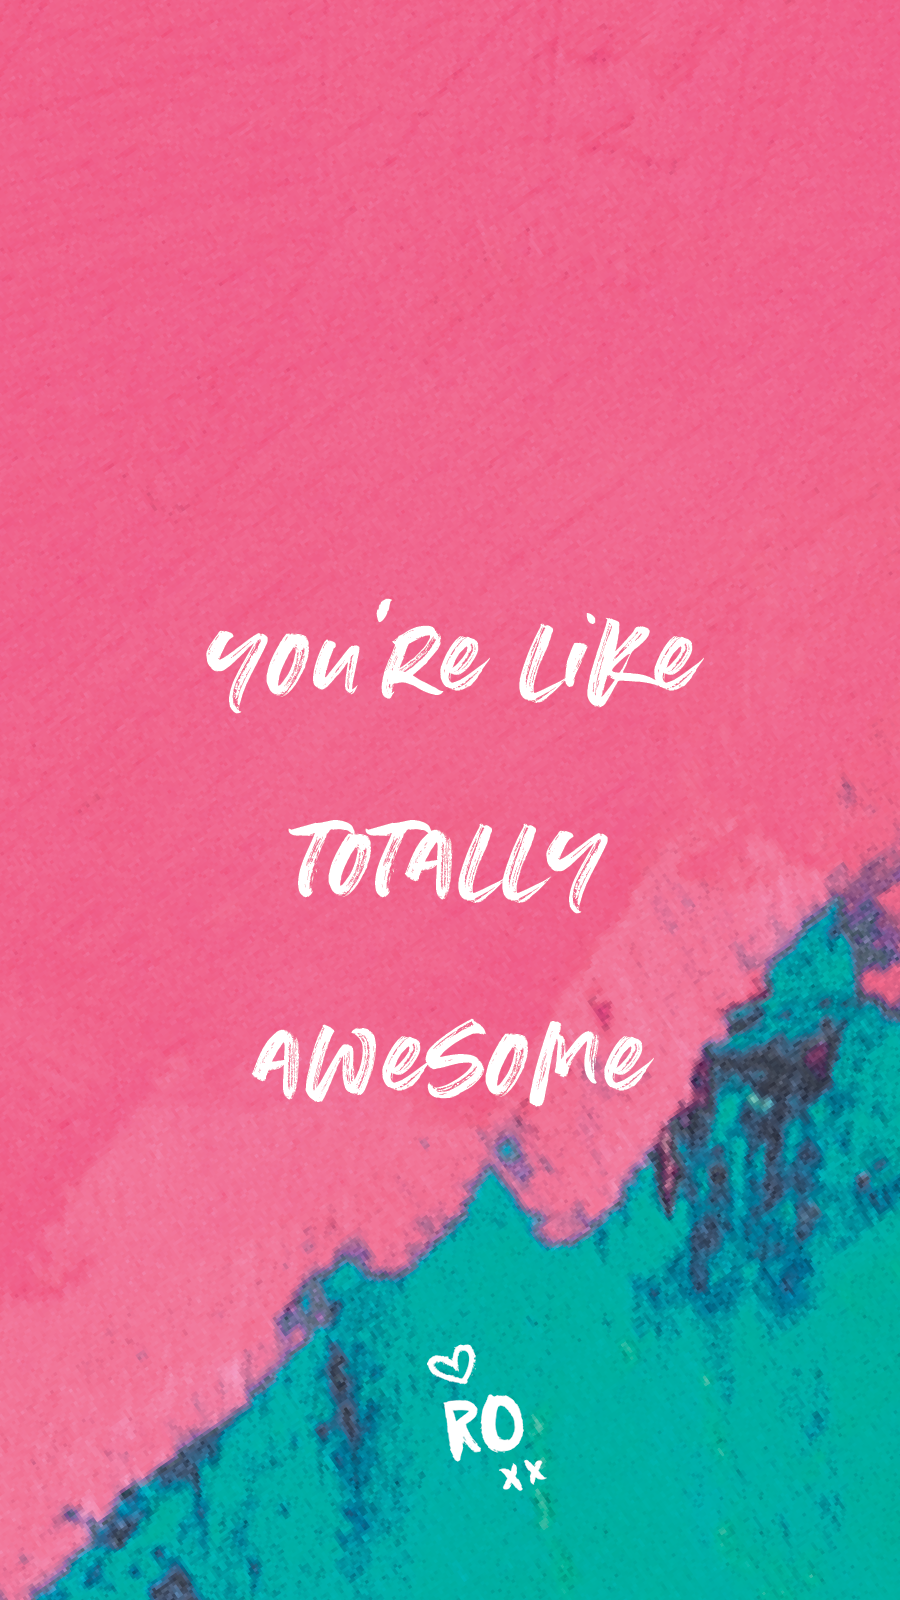 You're Like Totally Awesome - Ruby Olive Wallpaper